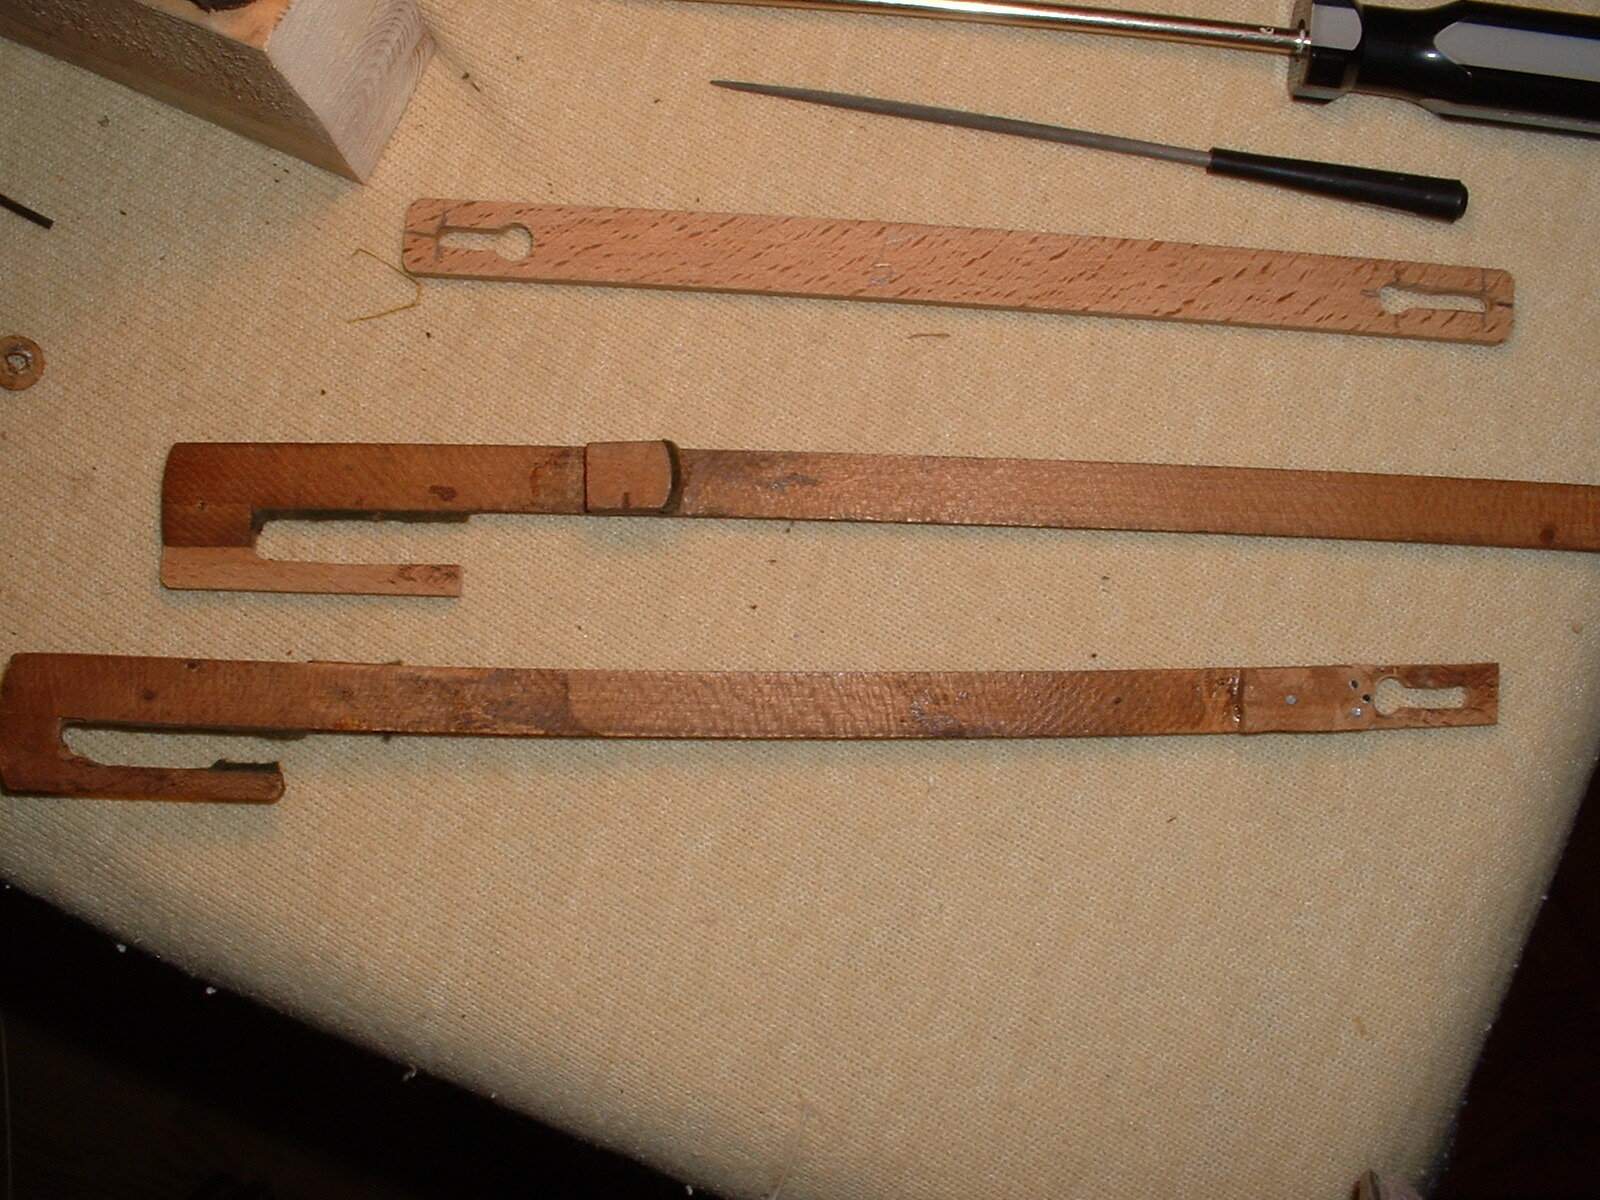 New and repaired linkages